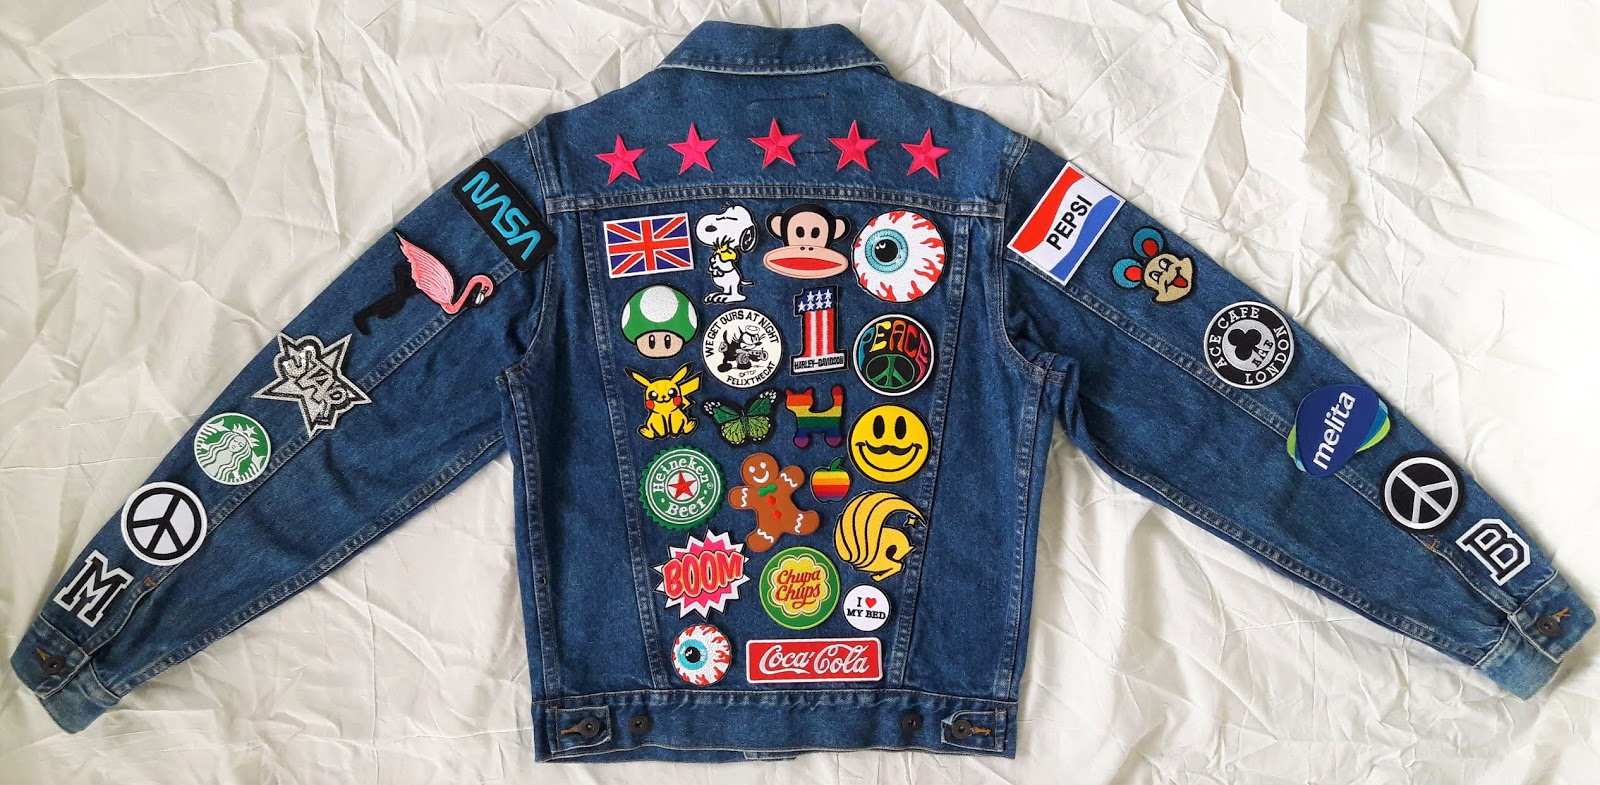 Patched Denim Hand Reworked Vintage Jean Jacket With Patches Women